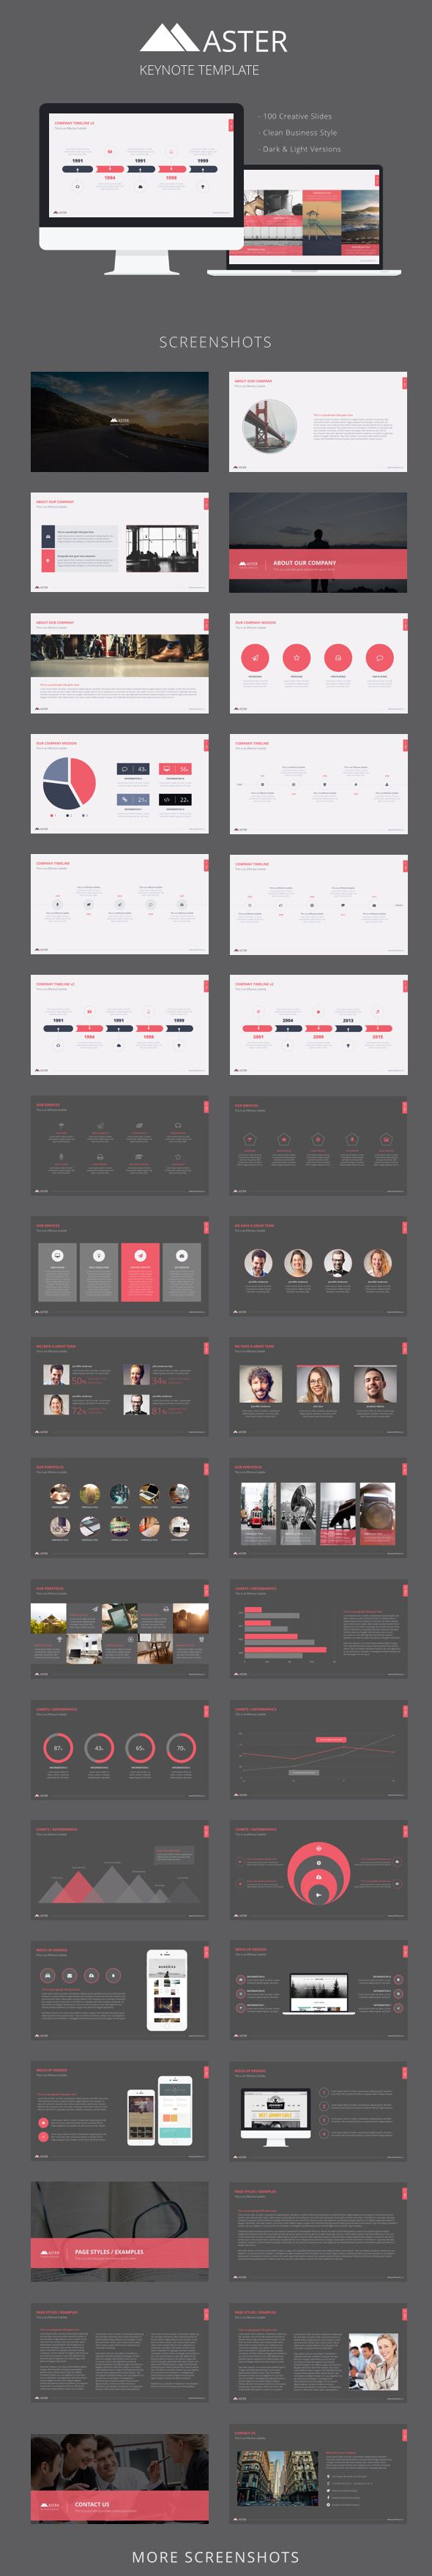 Master Keynote Template #design #slides Download: http://graphicriver.net/item/master-keynote-template/12689216?ref=ksioks